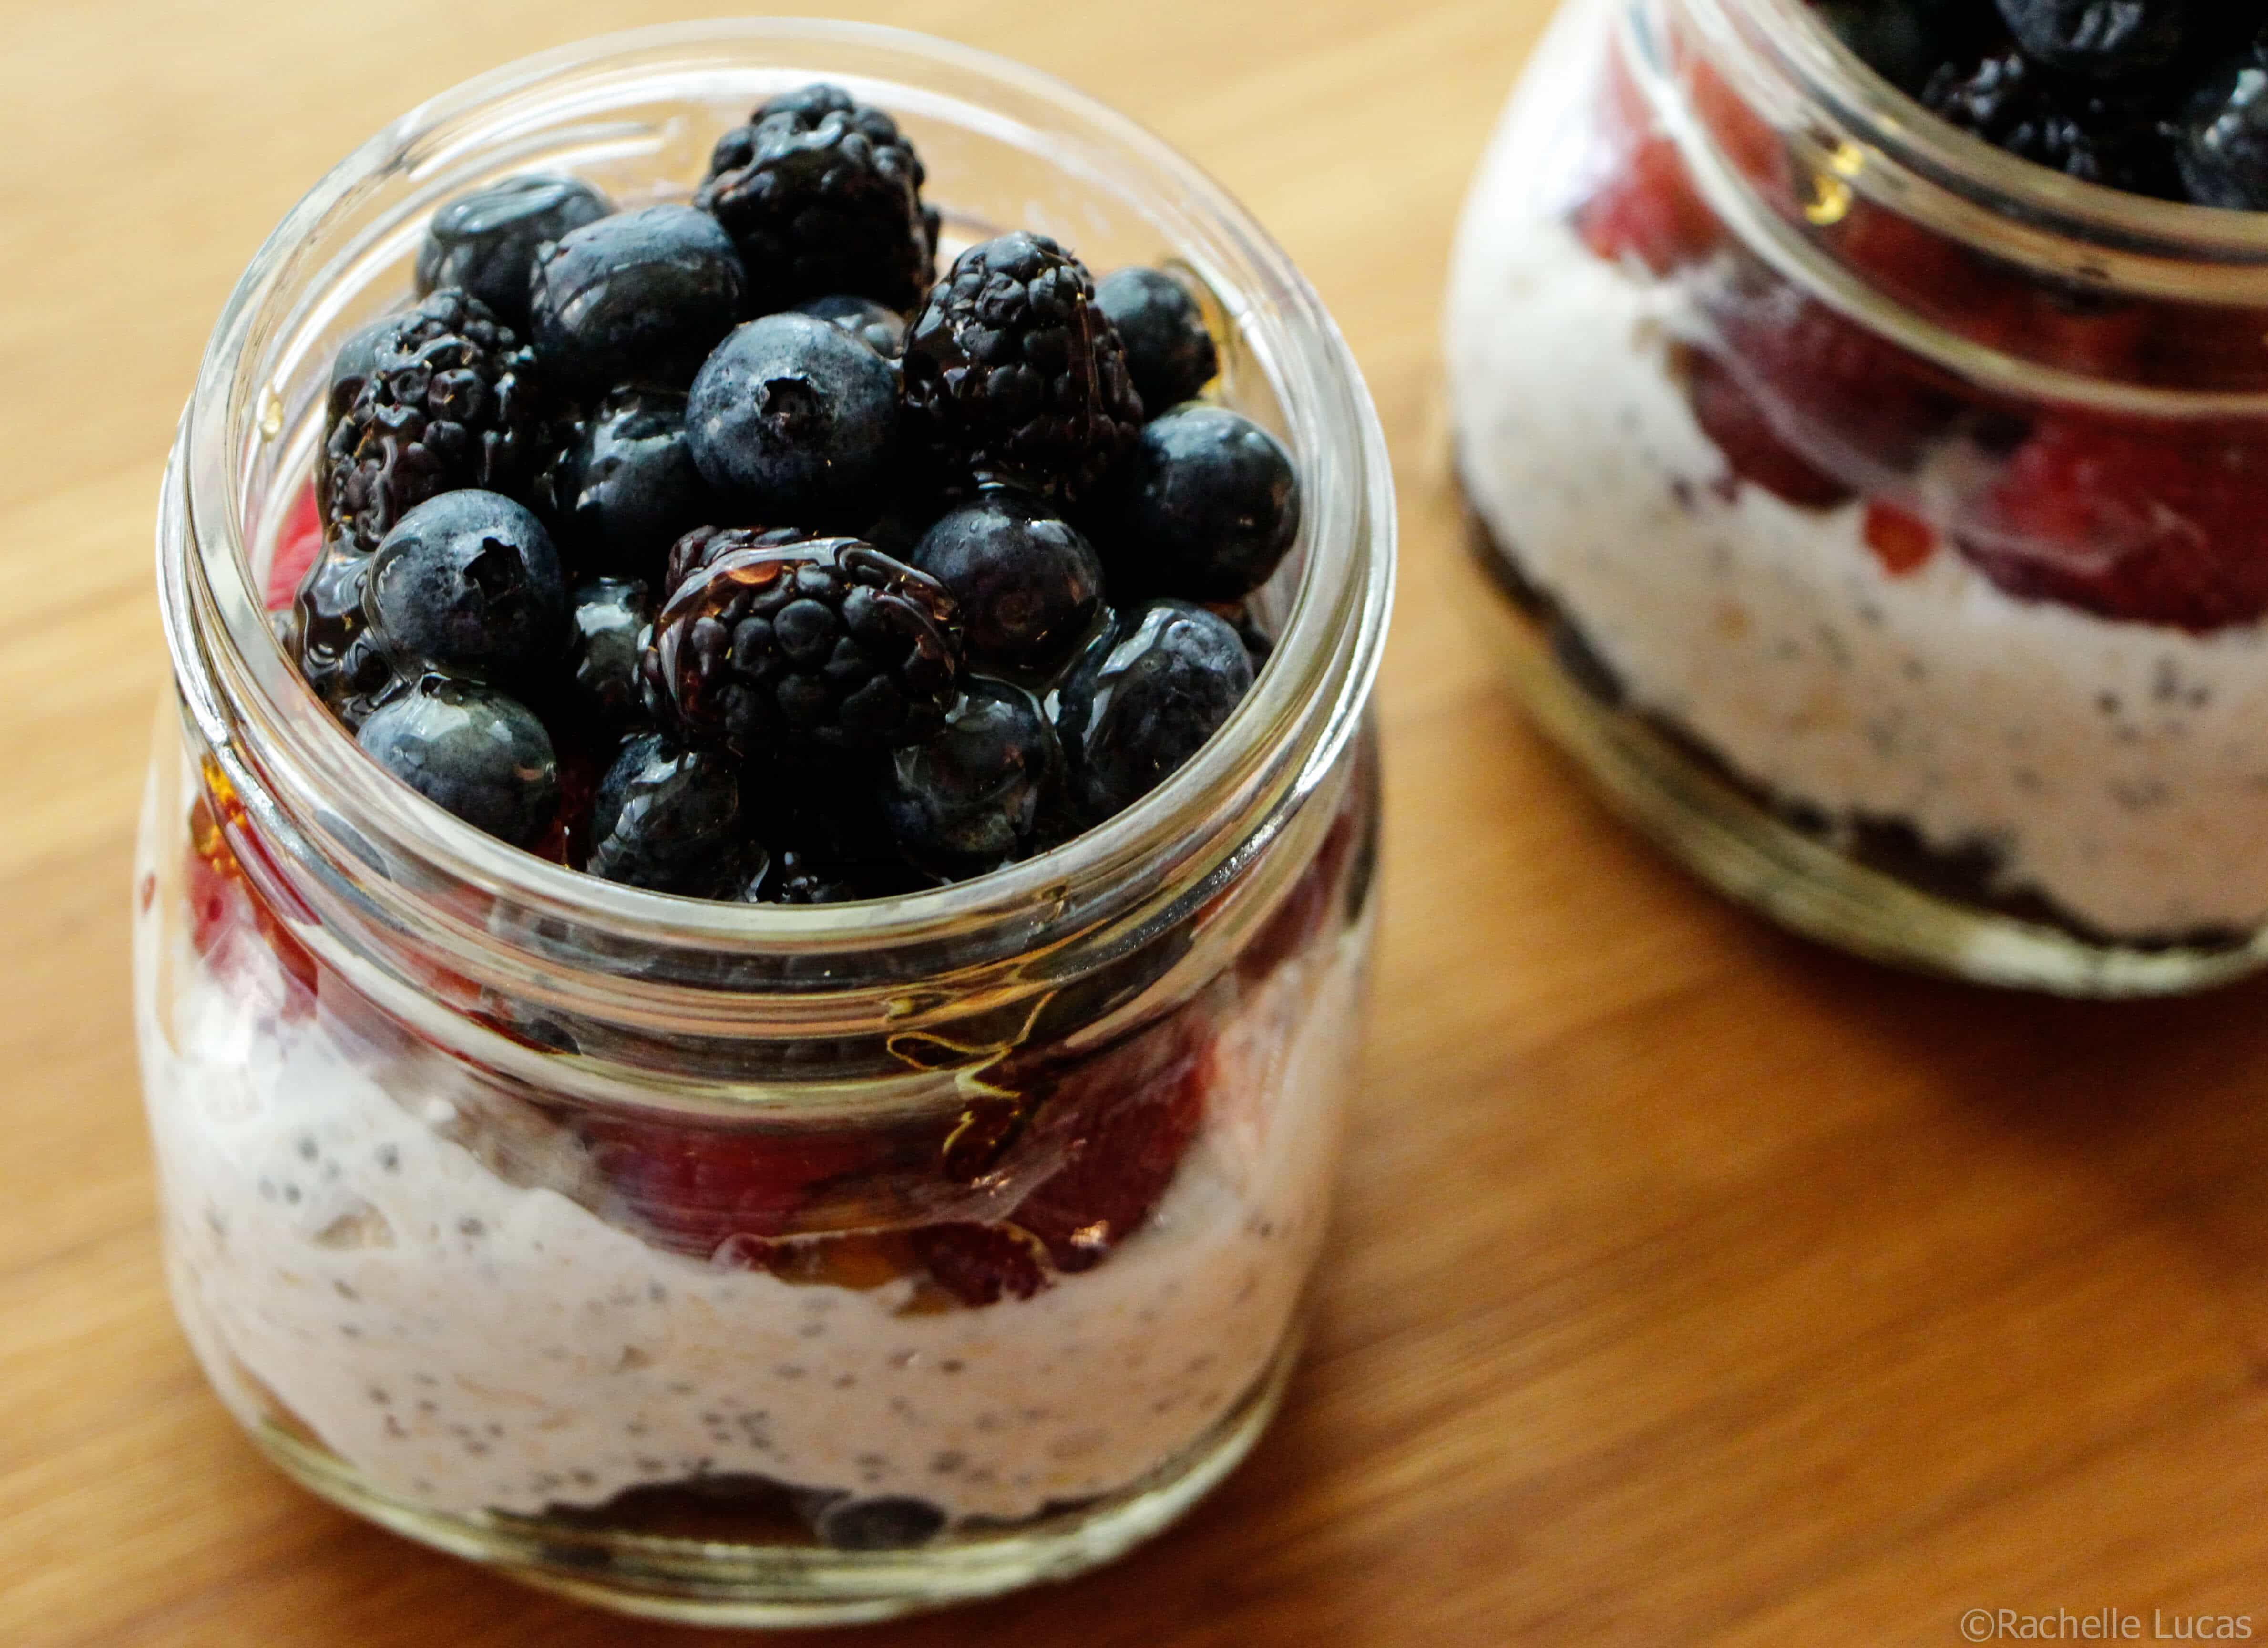 Recipe: Chilled Berry Summertime Oatmeal